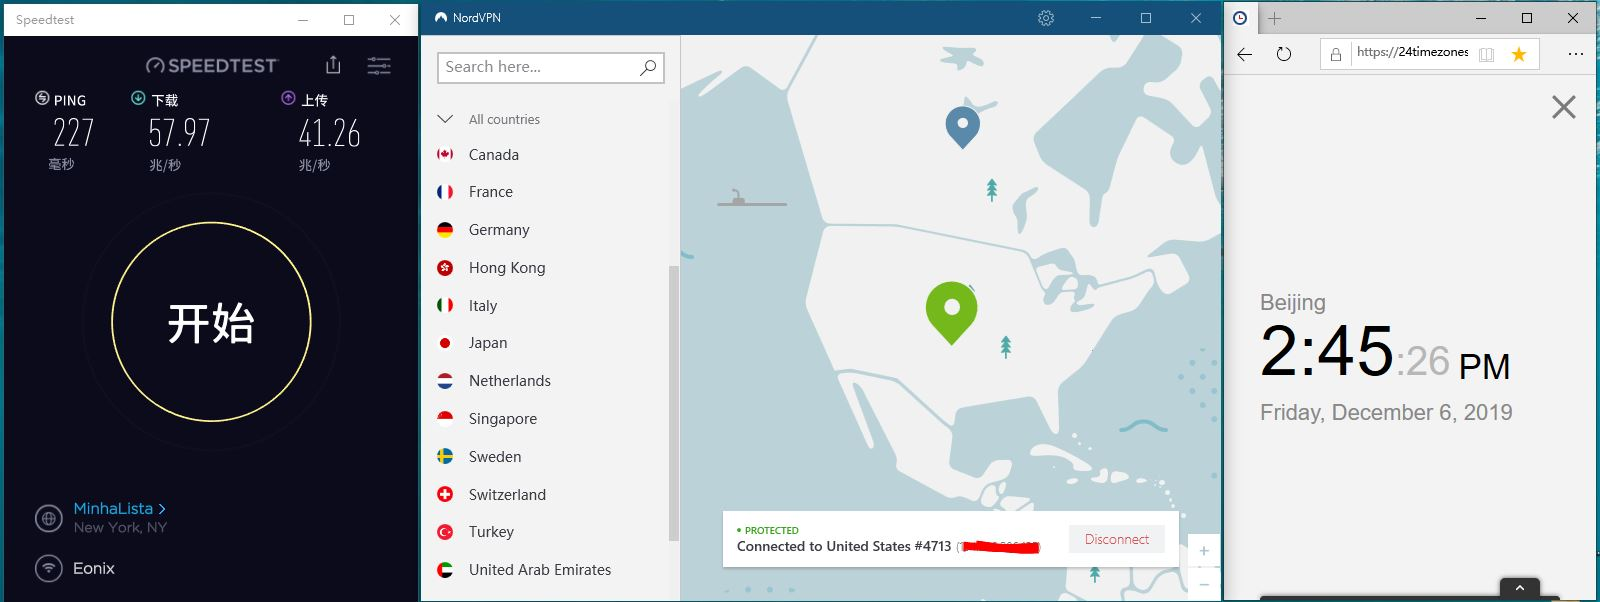 Windows NordVPN App直连 United States 4713 中国VPN翻墙 科学上网 Speedtest测速-20191206